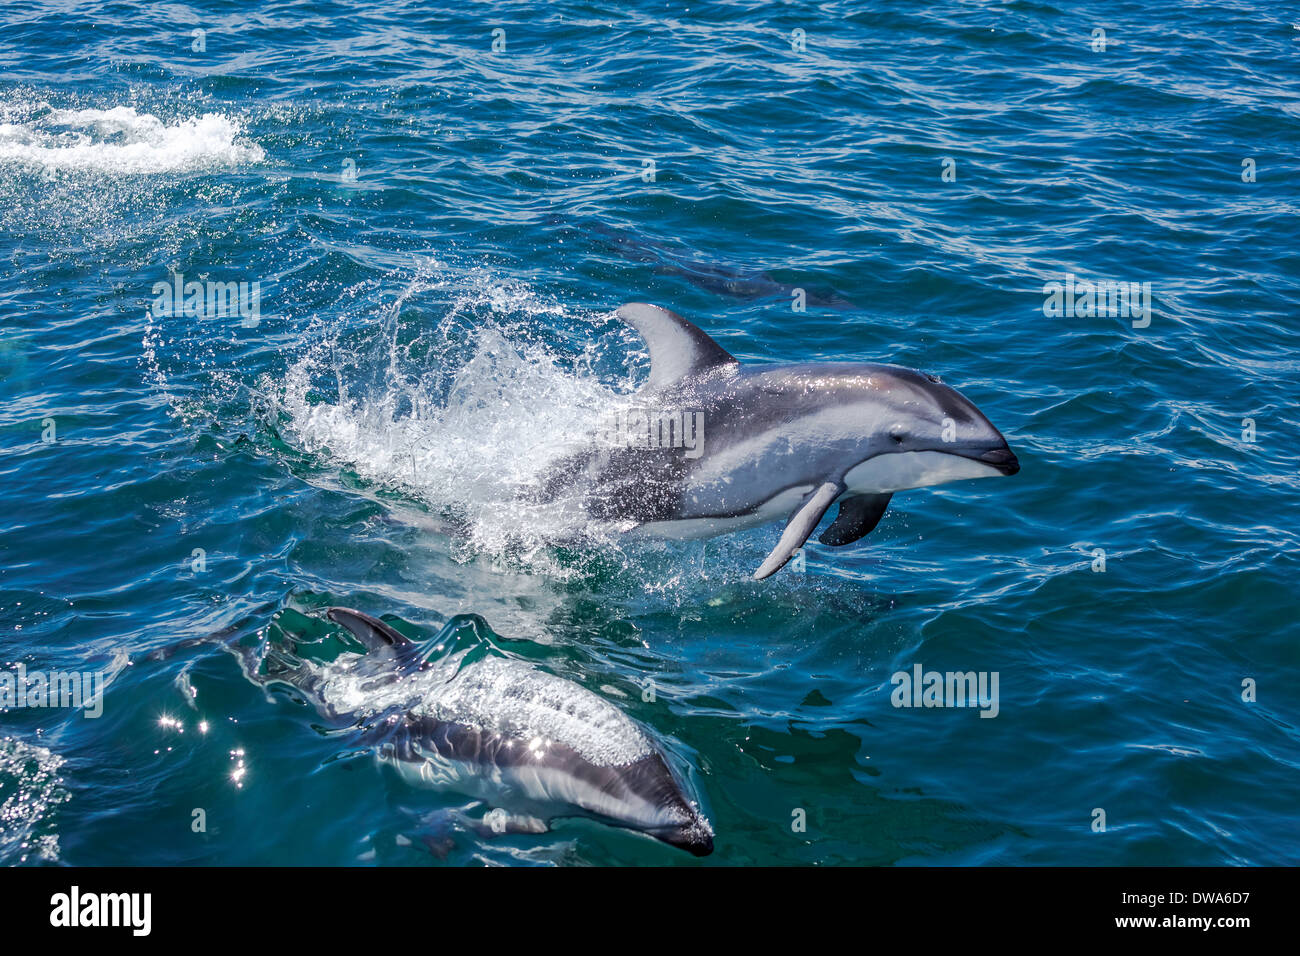 Pacific White Sided Dolphins jumping and swimming in the ocean. - Stock Image